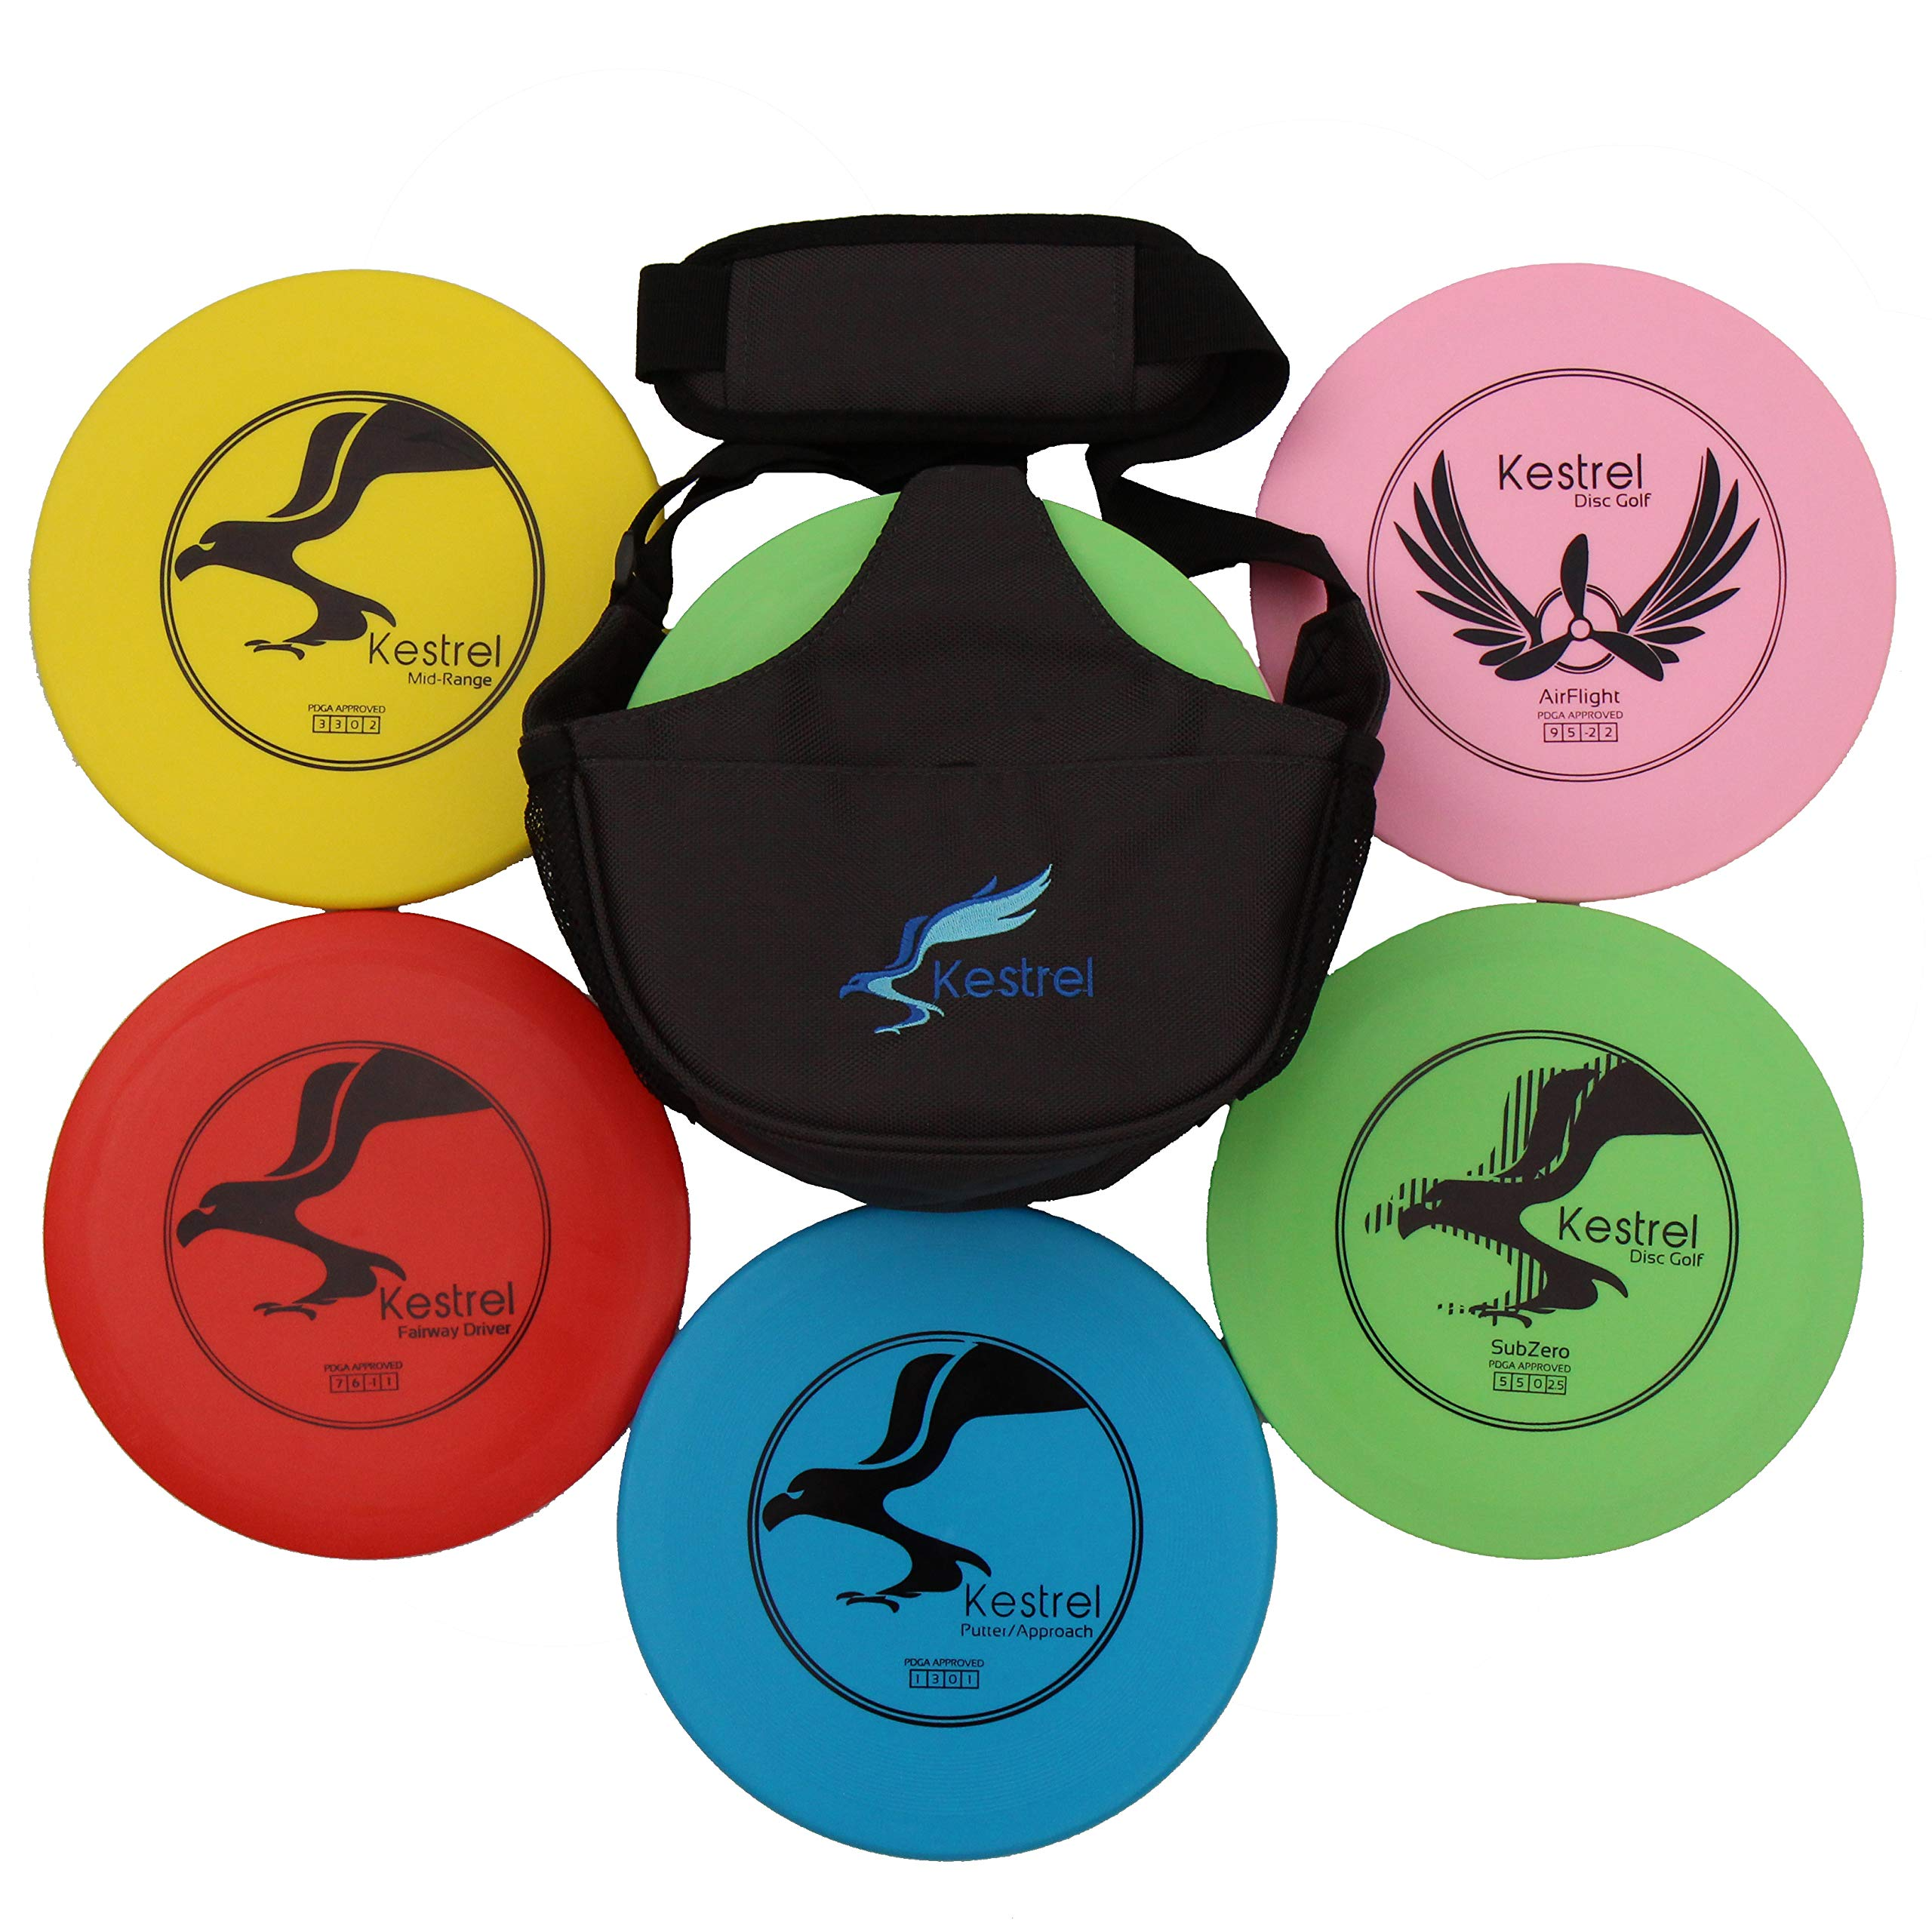 Kestrel Sports Disc Golf Pro Set Bundle | 3 Discs + Bag | Perfect Outdoor Games for Kids | Includes Fairway Driver, Mid-Range and Putter Outdoors Games | Ages 6+ (Kestrel Plastic 5)... by Kestrel Sports